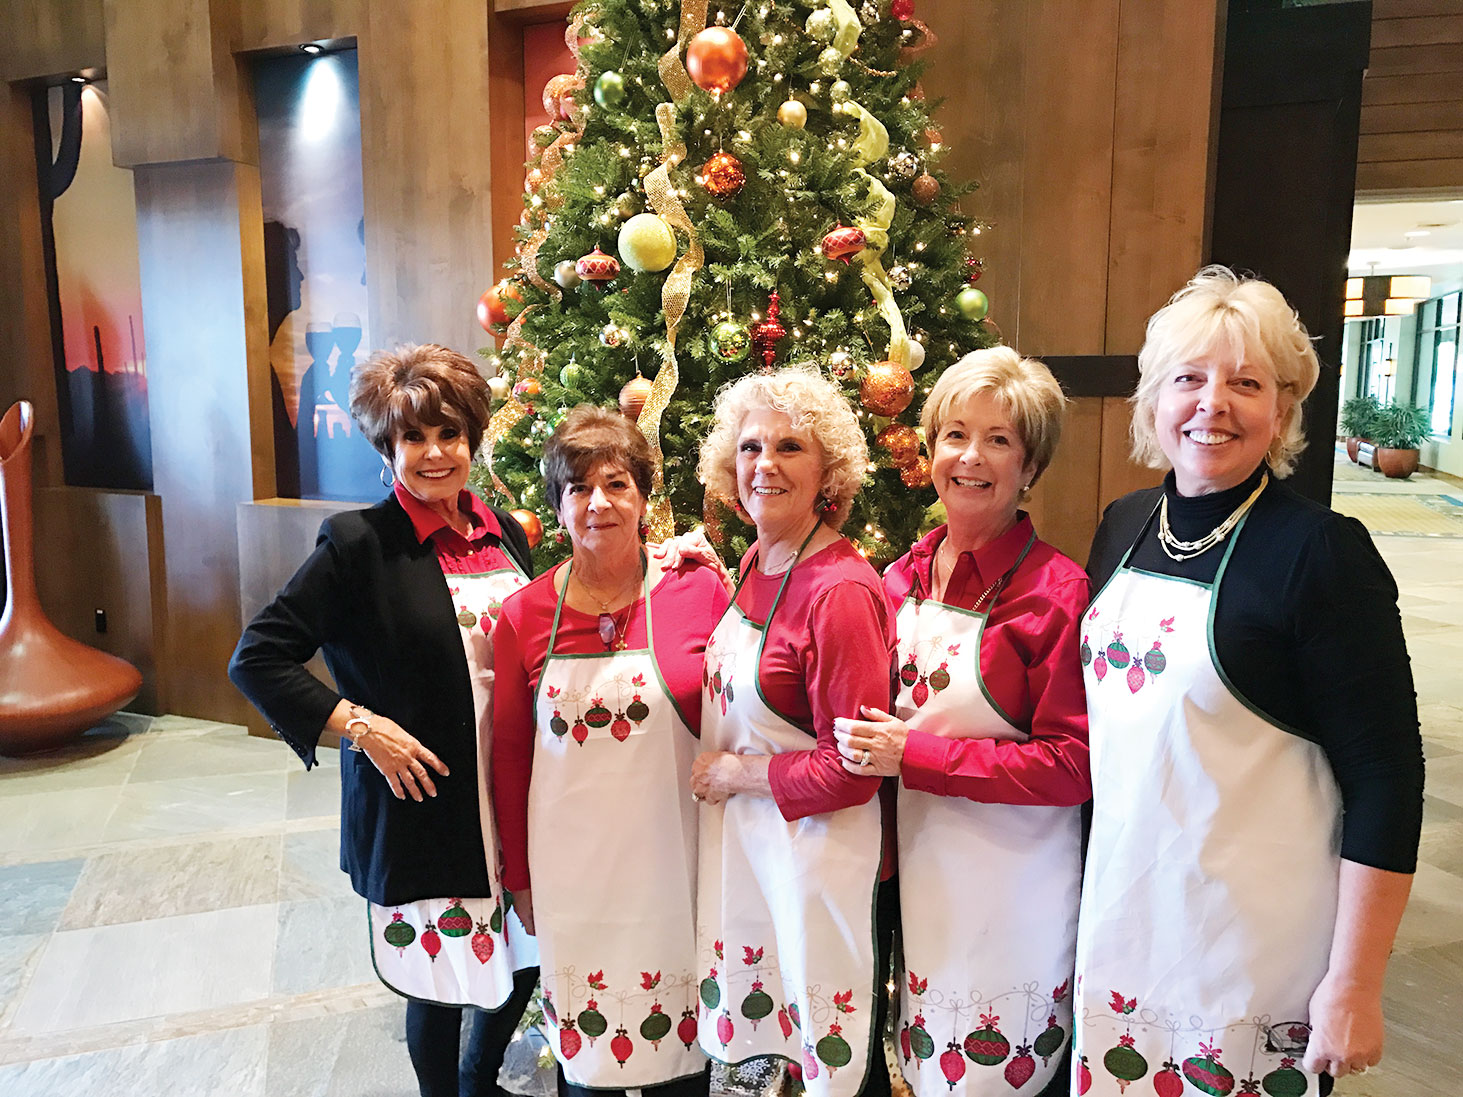 Left to right: Mindy Hawkins, Mary Spyros, Judy Andrasic, Colleen Carey and Ardie Rossi